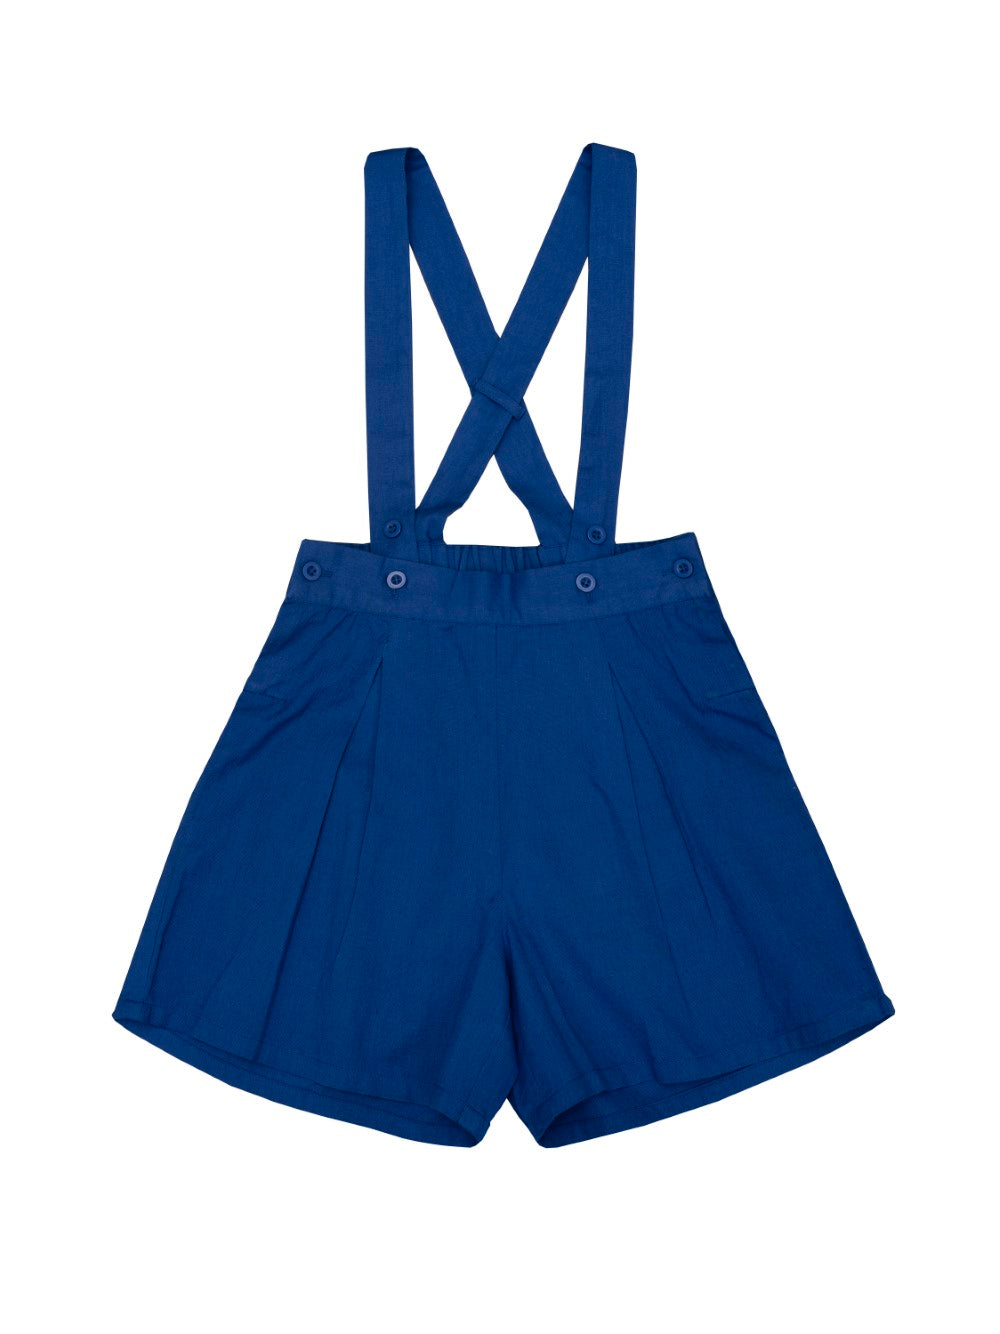 Blue Suspender Shorts